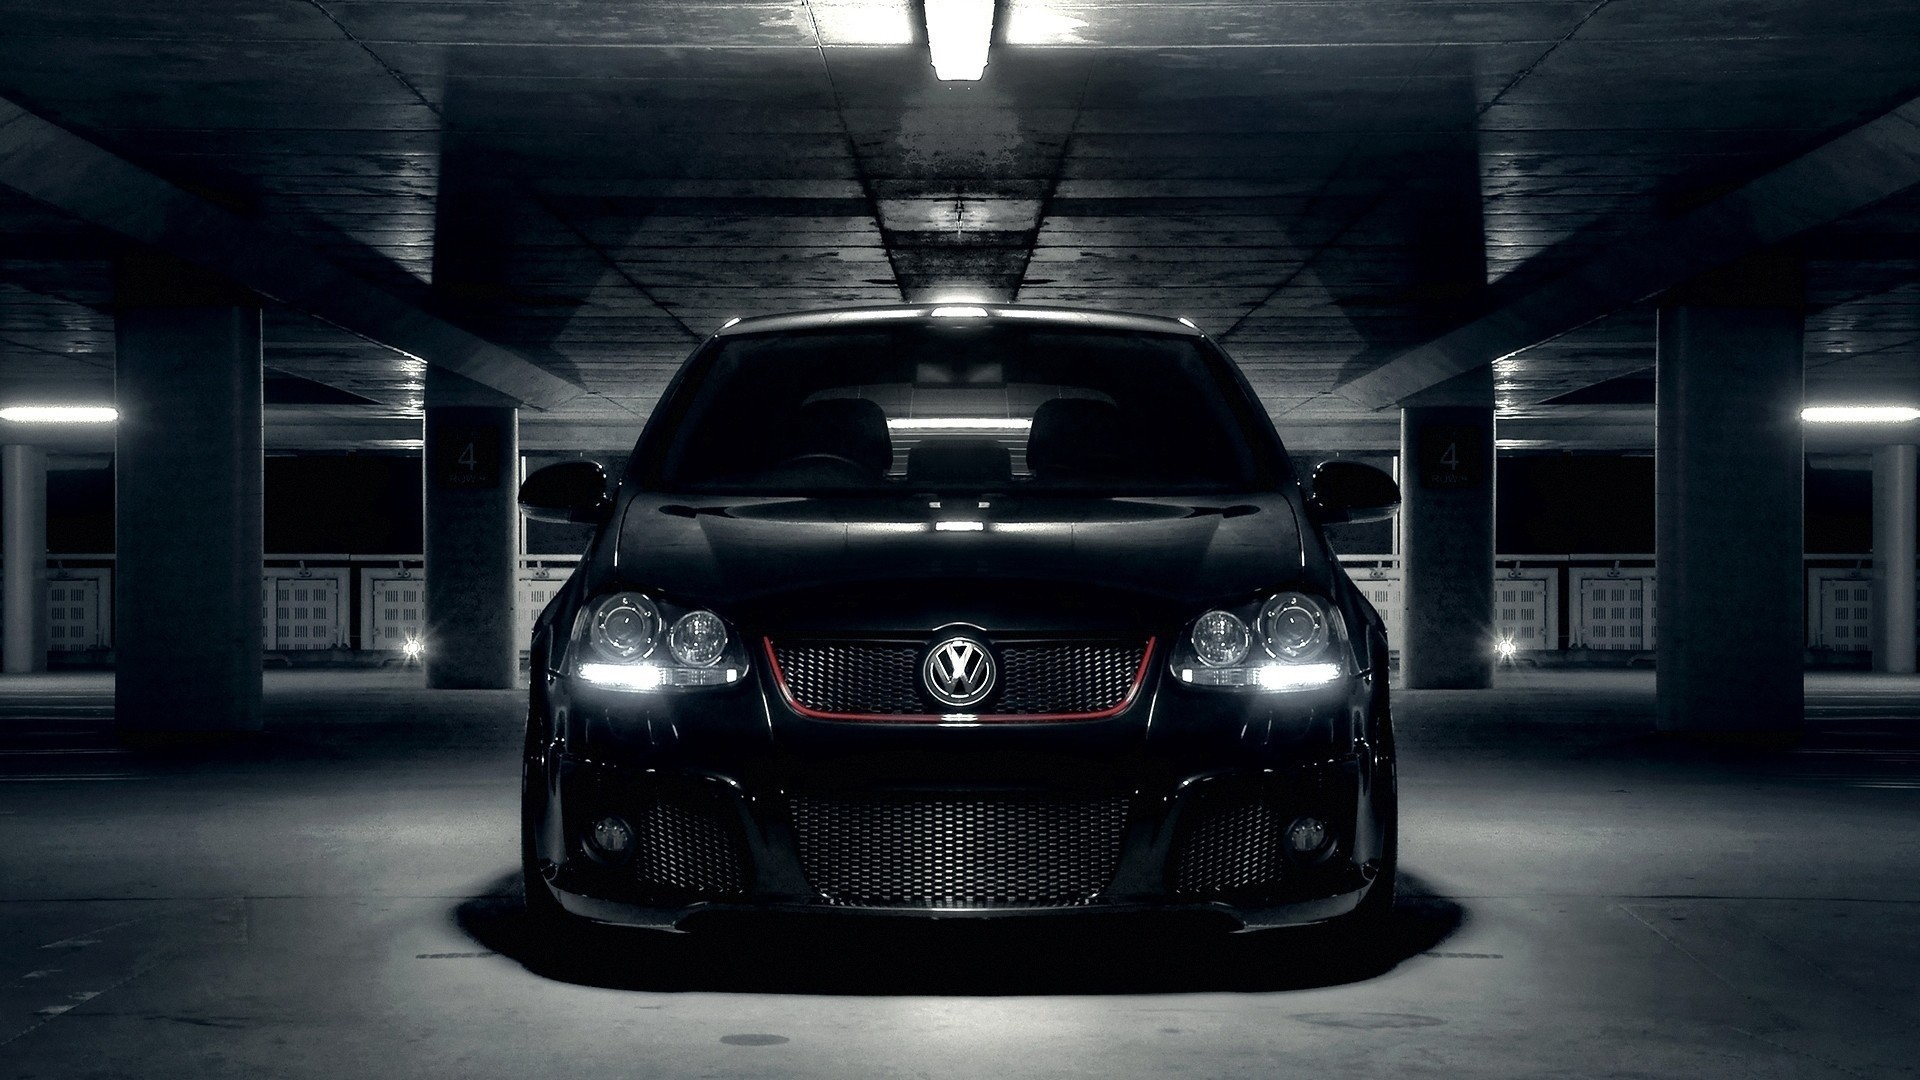 Vw Golf 6 Tuning Auto Search Results For Gti Wallpaper Adorable Wallpapers 1920x1080 19